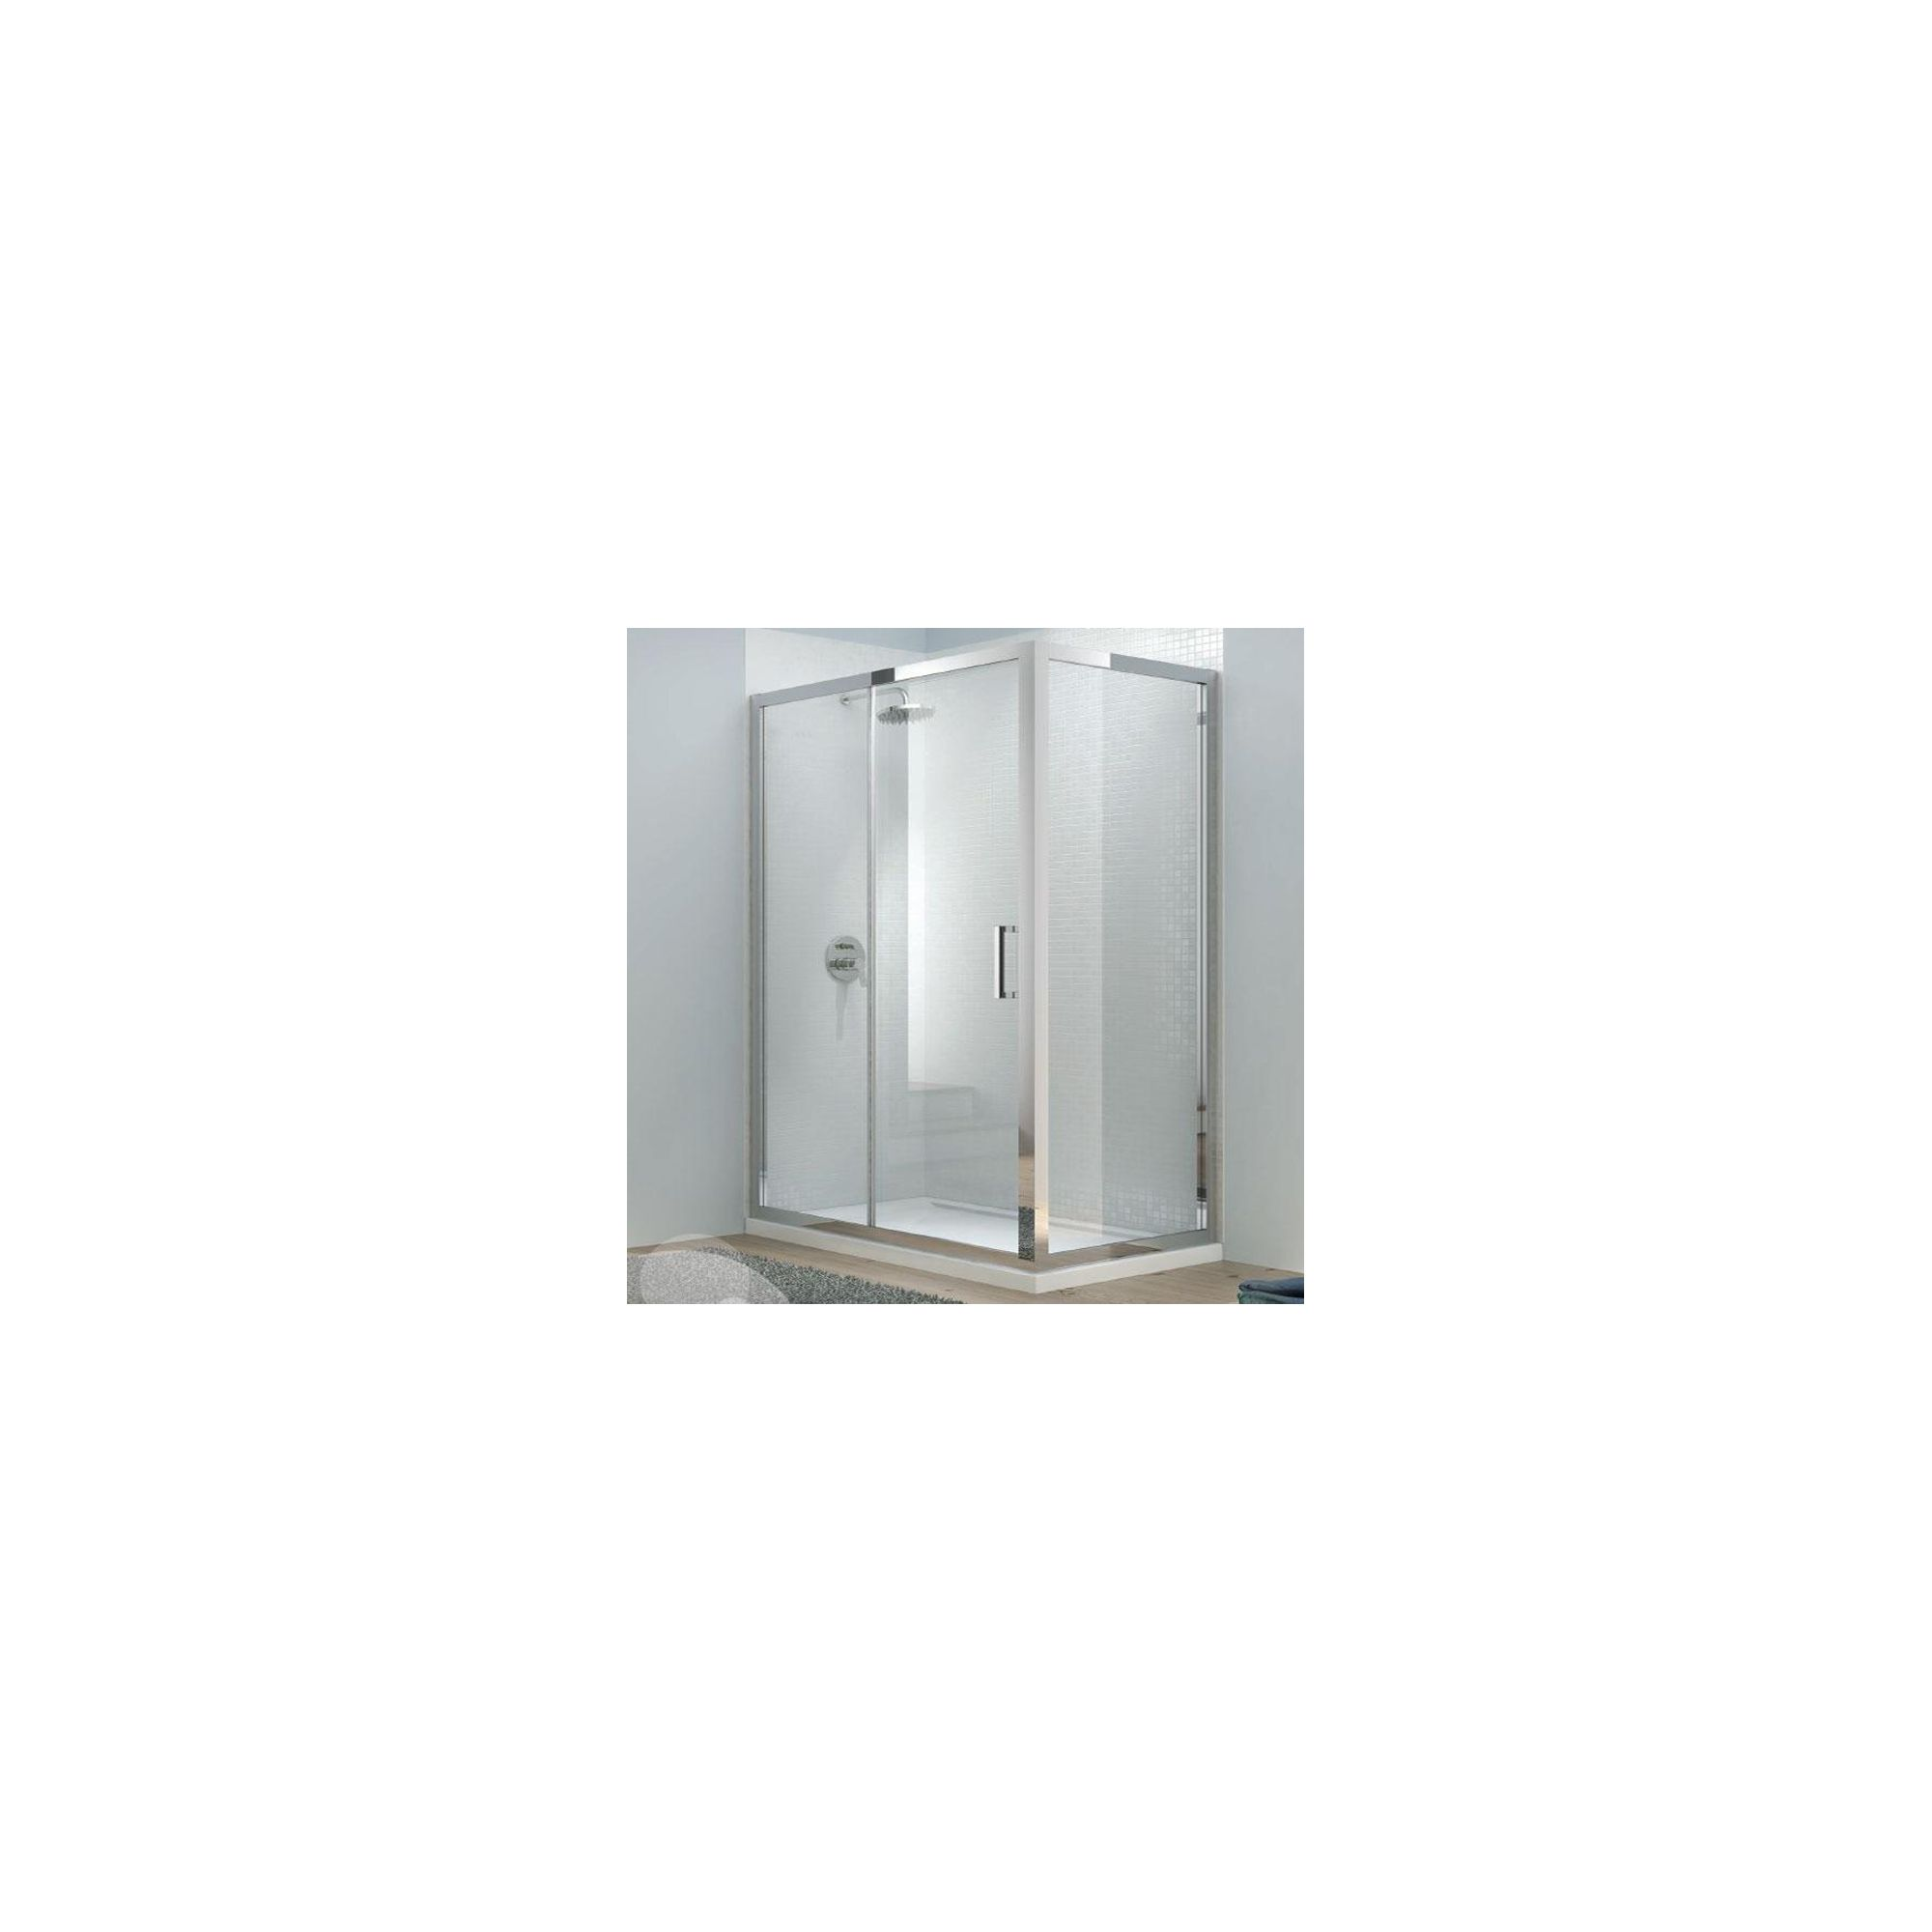 Merlyn Vivid Eight Sliding Shower Door, 1100mm Wide, 8mm Glass at Tesco Direct